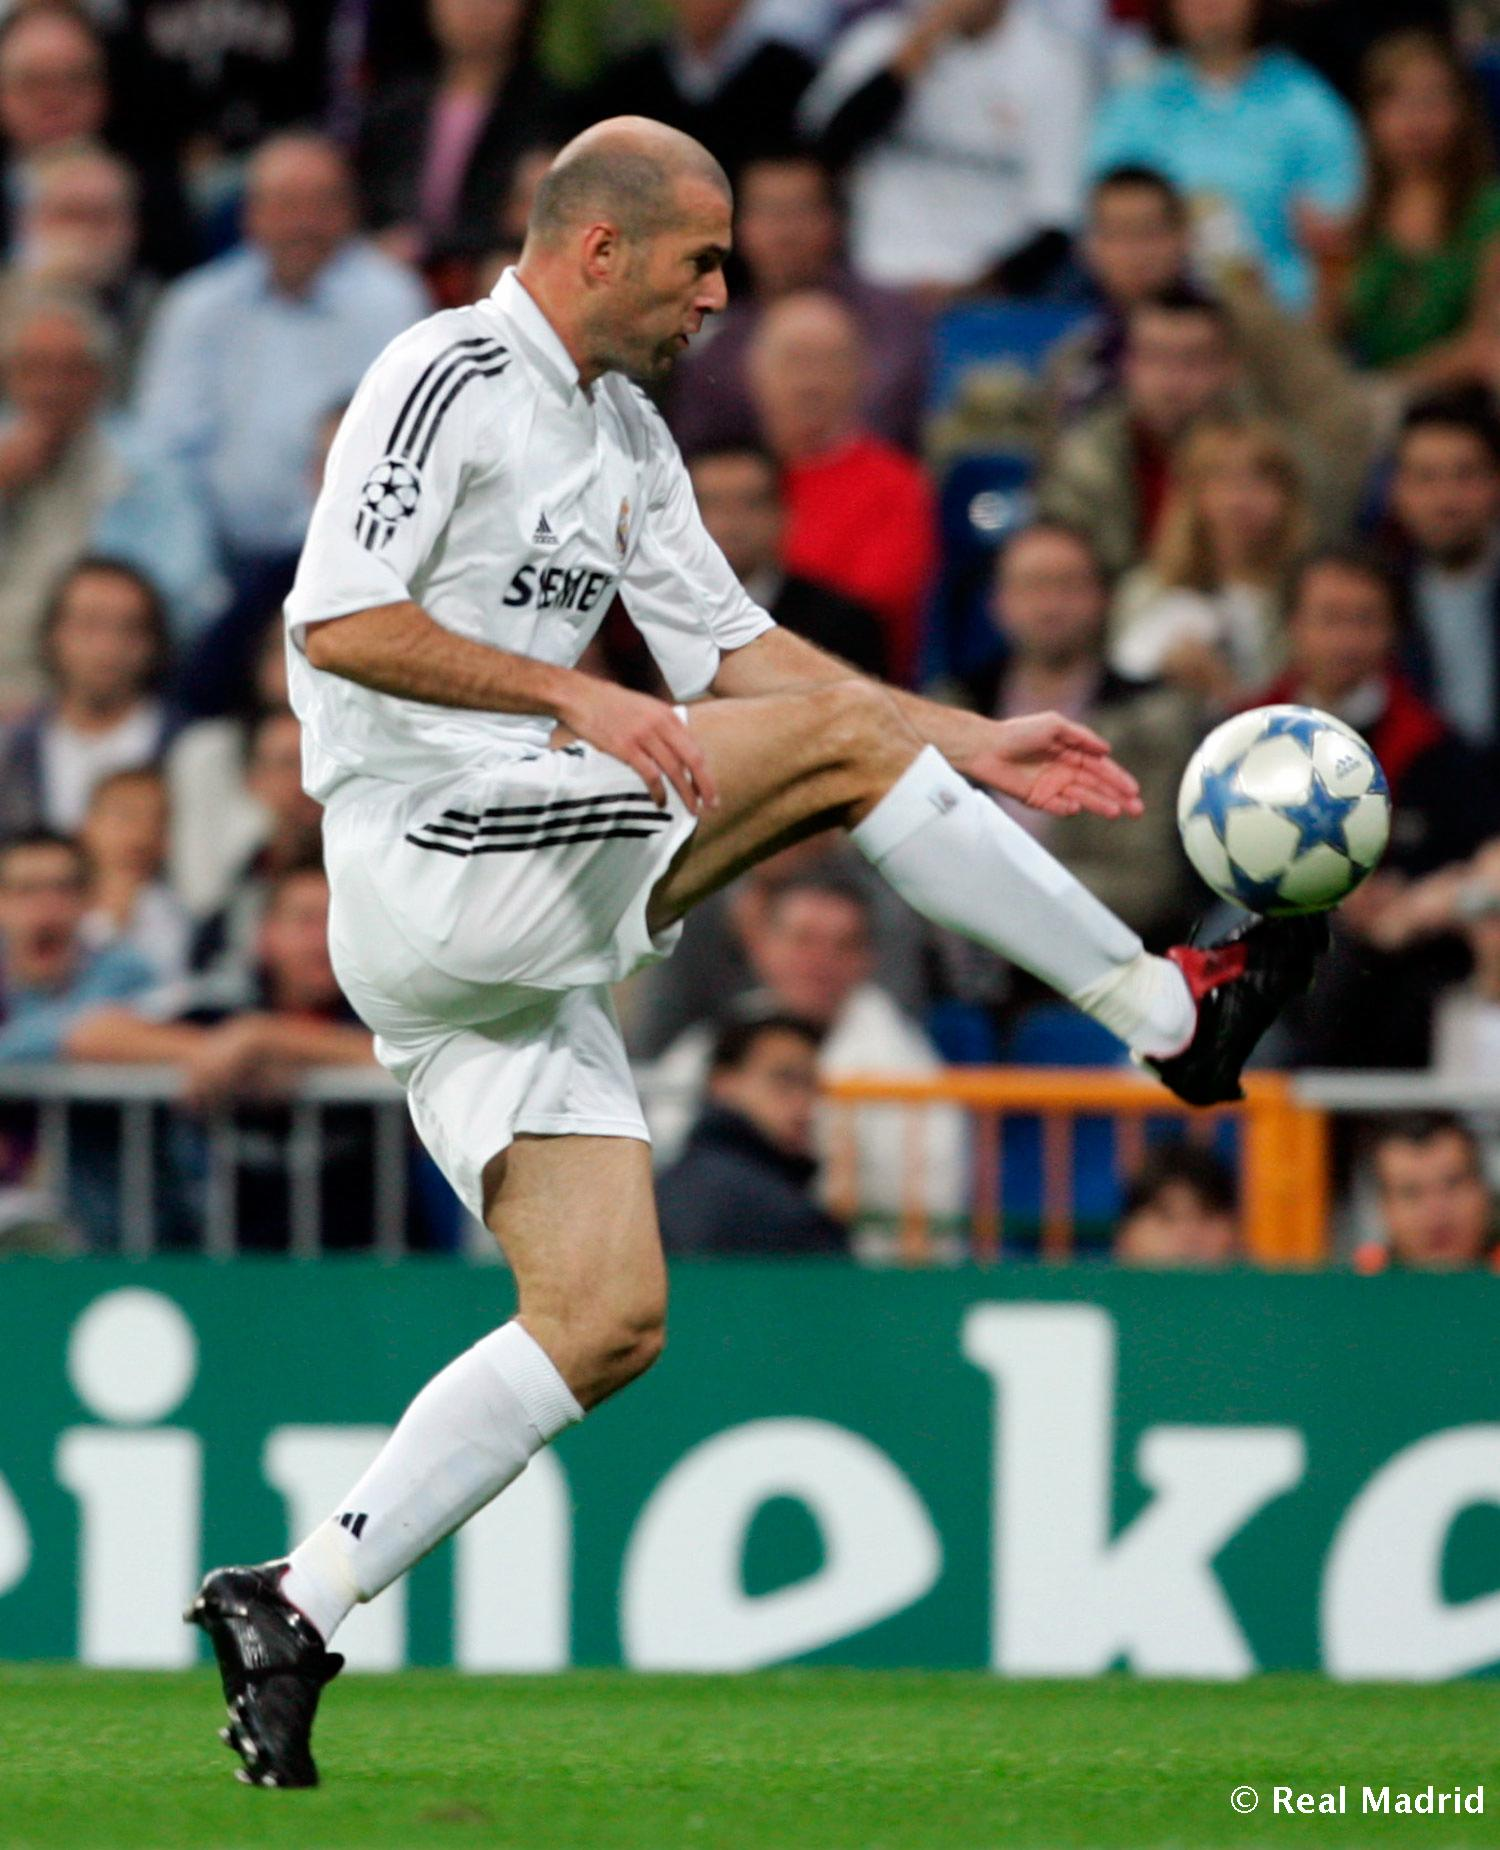 Real Madrid - Zidane 1 - 31-03-2015